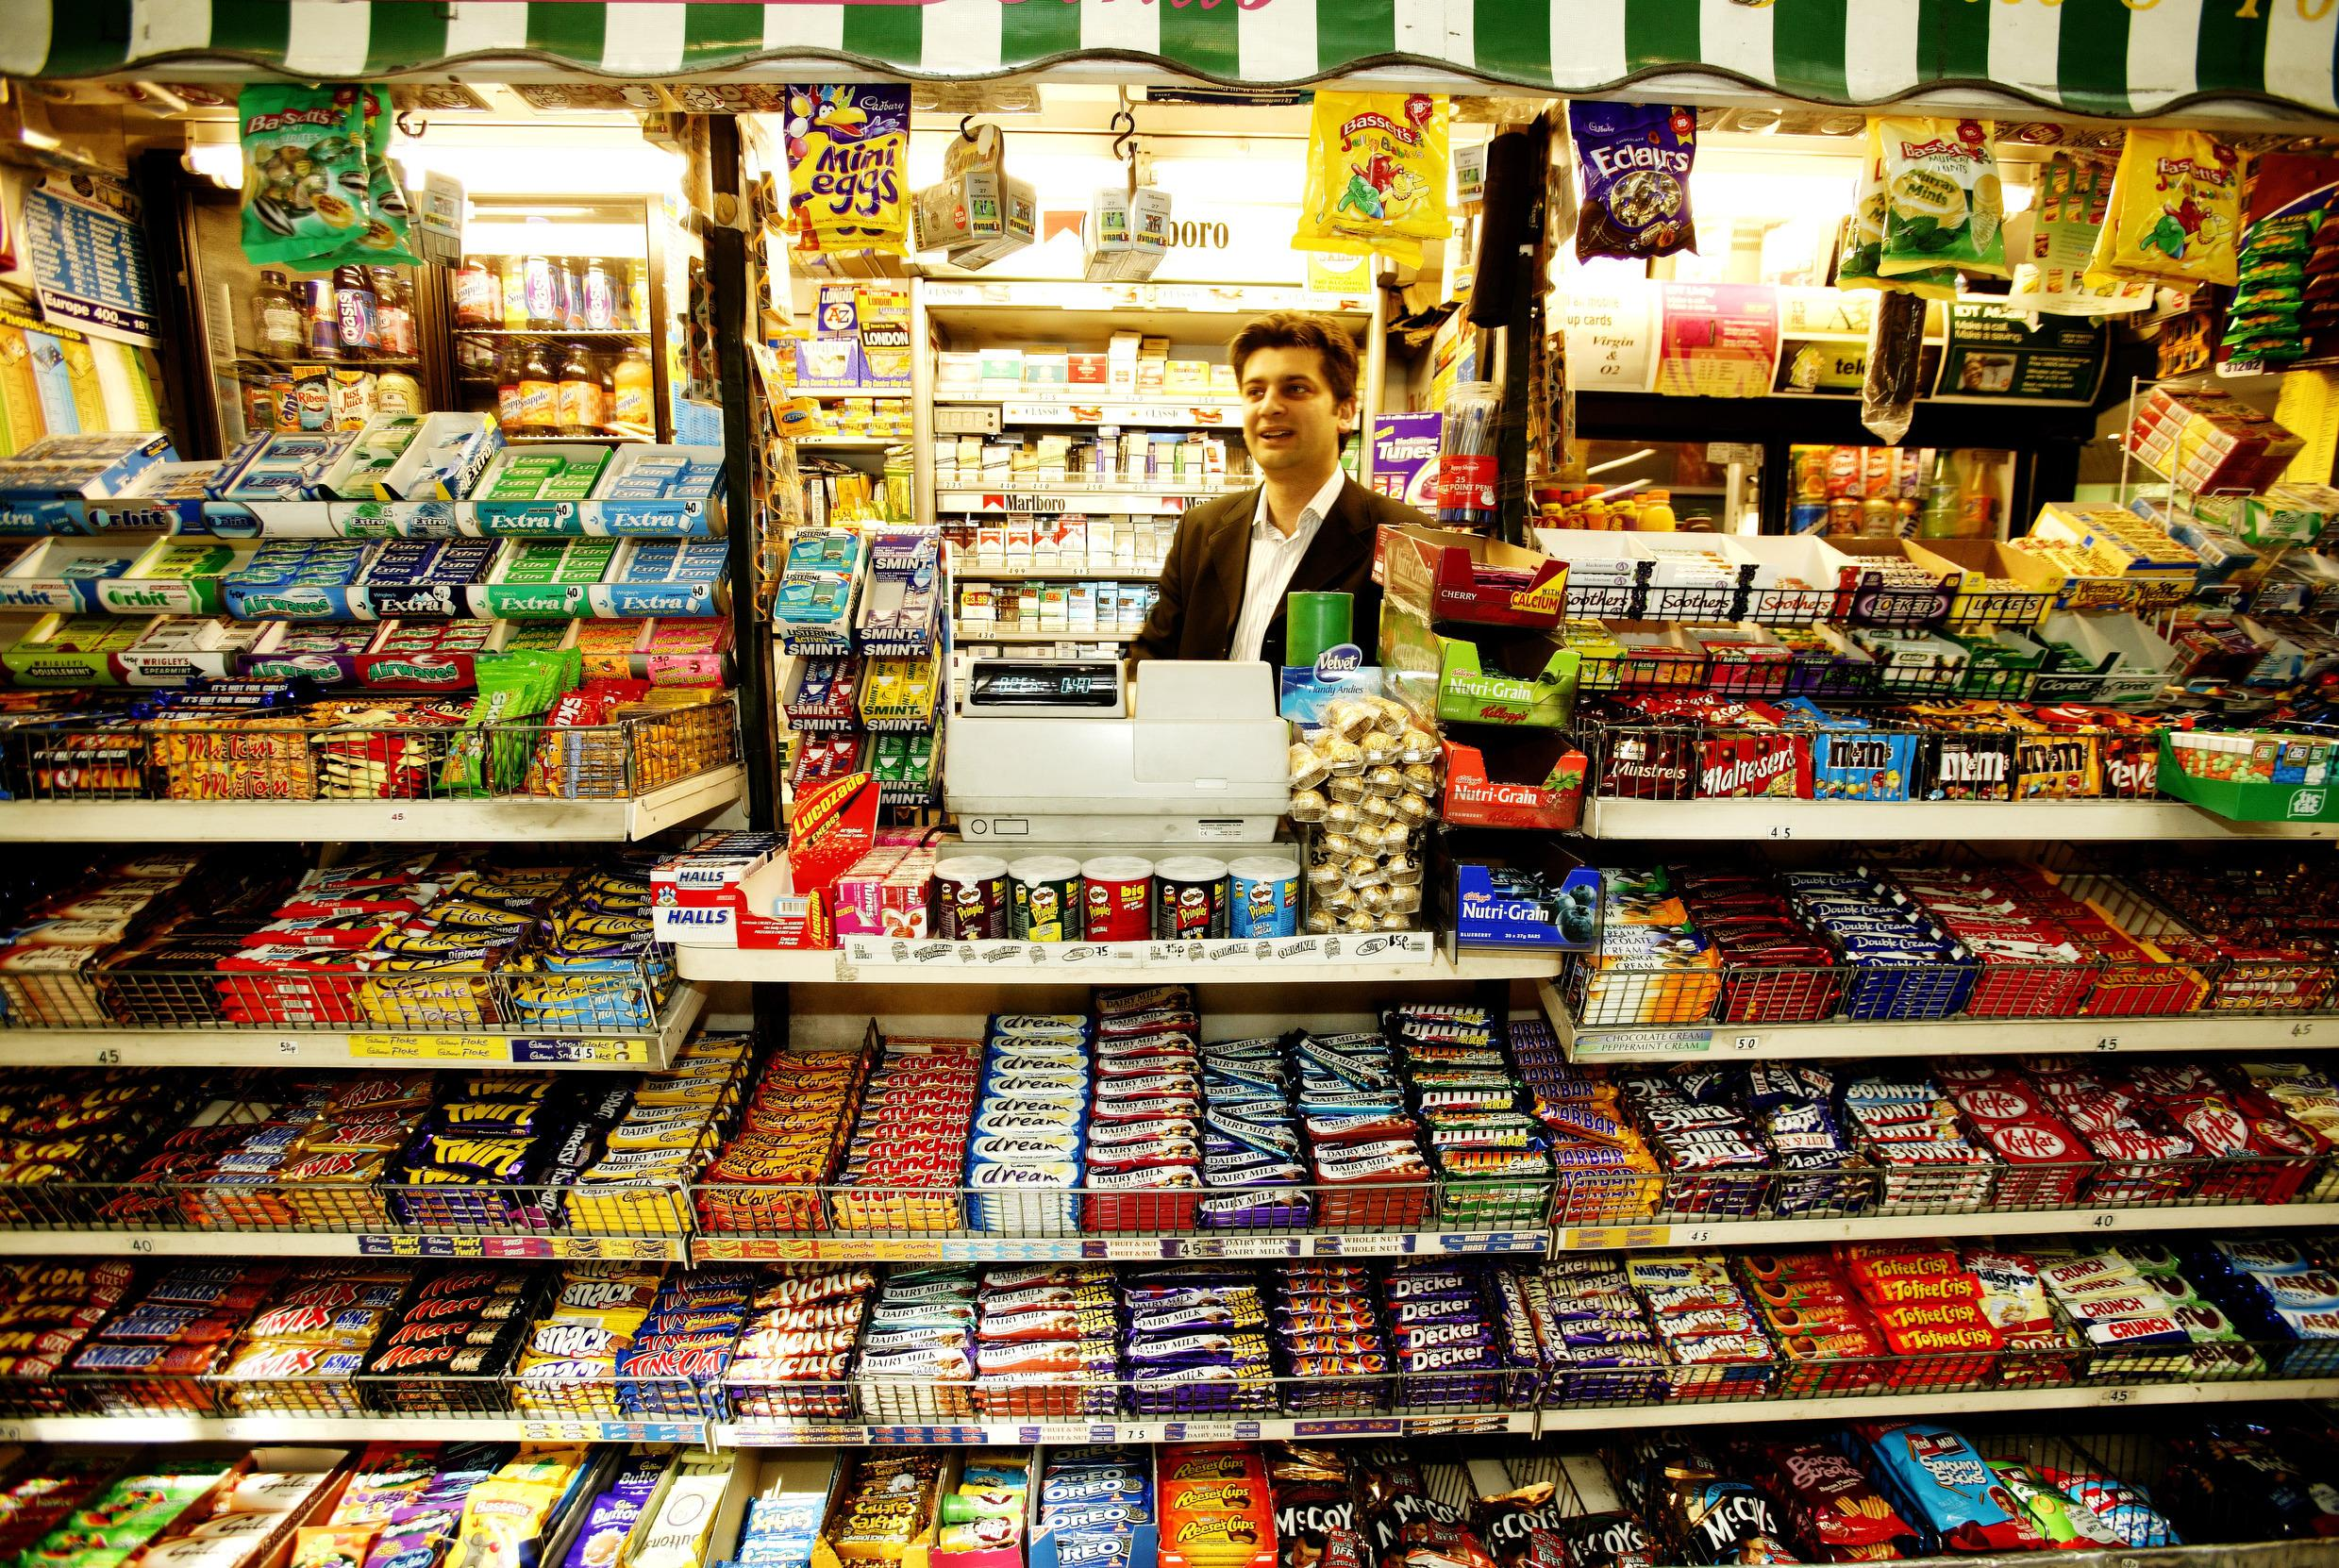 """<span style=""""color:rgb(0, 0, 0);font-family:helvetica, arial;"""">Chocolates and other sweets have long adorned checkout counters where bored kids are nagging their parents to buy them a treat. Supermarkets have come under pressure from the government to move chocolate away from checkouts and some have responded. Lidl has just</span><a href=""""http://www.theguardian.com/business/2014/jan/13/lidl-bans-sweets-at-checkout"""" style=""""margin:0px;padding:0px;vertical-align:baseline;outline:0px;color:rgb(25, 134, 213);text-decoration:none;cursor:pointer;font-family:helvetica, arial;"""" target=""""_blank"""">banned sweets and chocolate bars</a><span style=""""color:rgb(0, 0, 0);font-family:helvetica, arial;"""">from the checkout of its 600 UK stores and vowed to replace them with dried fruit and oatcakes.</span><br style=""""color:rgb(0, 0, 0);font-family:helvetica, arial;""""/> <br style=""""color:rgb(0, 0, 0);font-family:helvetica, arial;""""/> <a class=""""skimwords-link"""" href=""""http://www.sainsburys.co.uk/"""" style=""""margin:0px;padding:0px;vertical-align:baseline;outline:0px;color:rgb(25, 134, 213);text-decoration:none;cursor:pointer;font-family:helvetica, arial;"""" target=""""_blank"""" title="""""""">Sainsbury's</a><span style=""""color:rgb(0, 0, 0);font-family:helvetica, arial;"""">has a</span><a href=""""http://conversation.which.co.uk/consumer-rights/sweets-at-checkouts-supermarket-policies/"""" style=""""margin:0px;padding:0px;vertical-align:baseline;outline:0px;color:rgb(25, 134, 213);text-decoration:none;cursor:pointer;font-family:helvetica, arial;"""" target=""""_blank"""">policy of no confectionery next to checkouts</a><span style=""""color:rgb(0, 0, 0);font-family:helvetica, arial;"""">in its supermarkets, but not in smaller convenience stores, similarly to Tesco.</span>"""